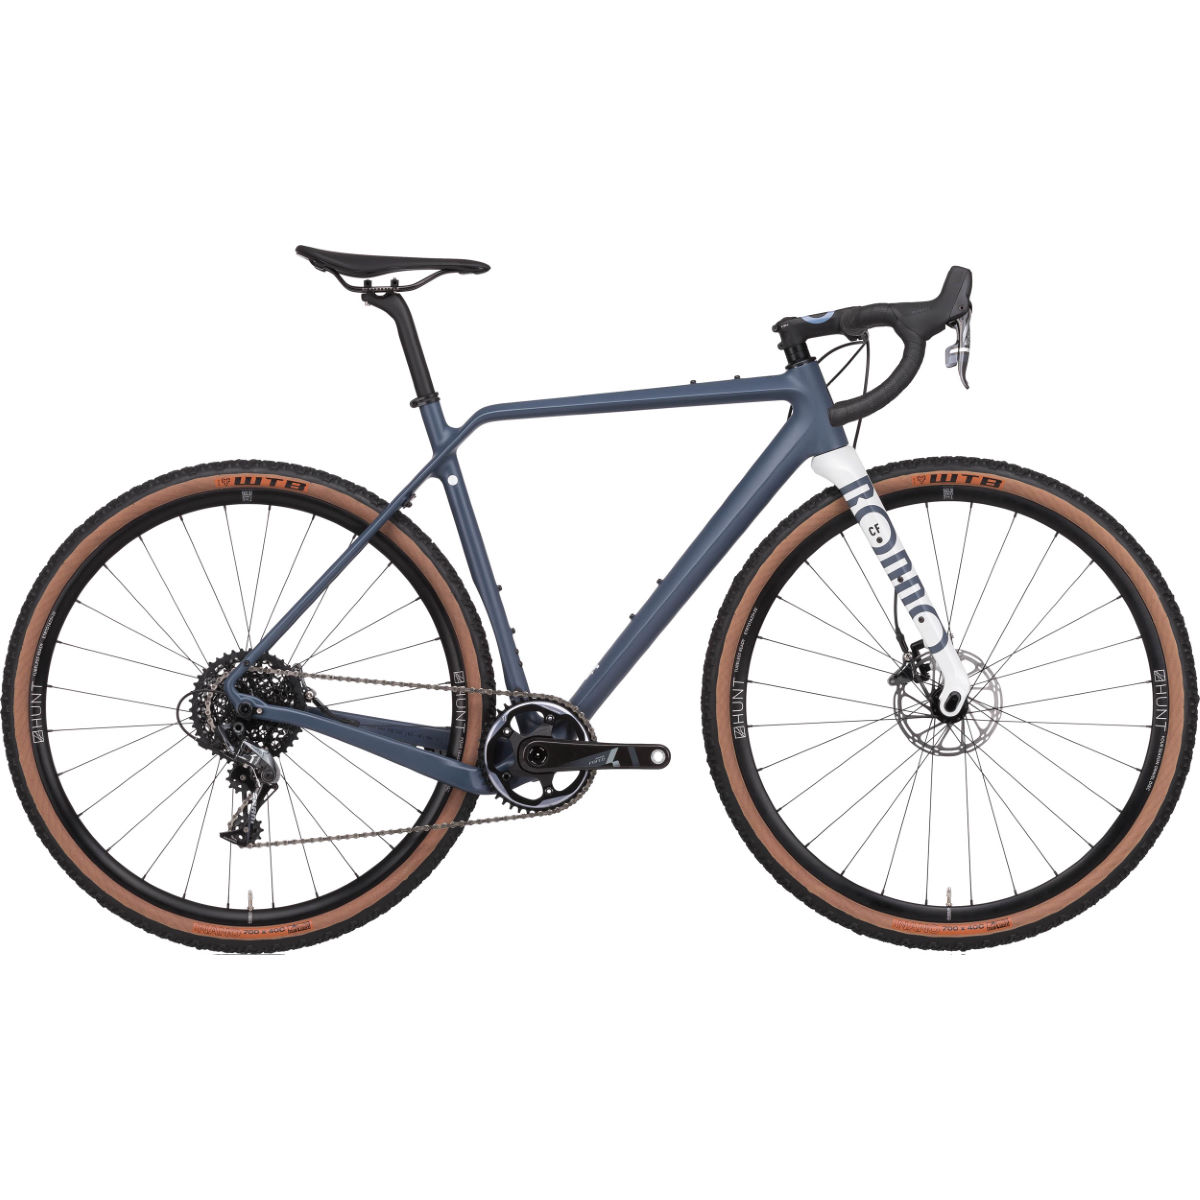 Rondo Rondo Ruut CF 1 Gravel Bike (2020)   Adventure Bikes